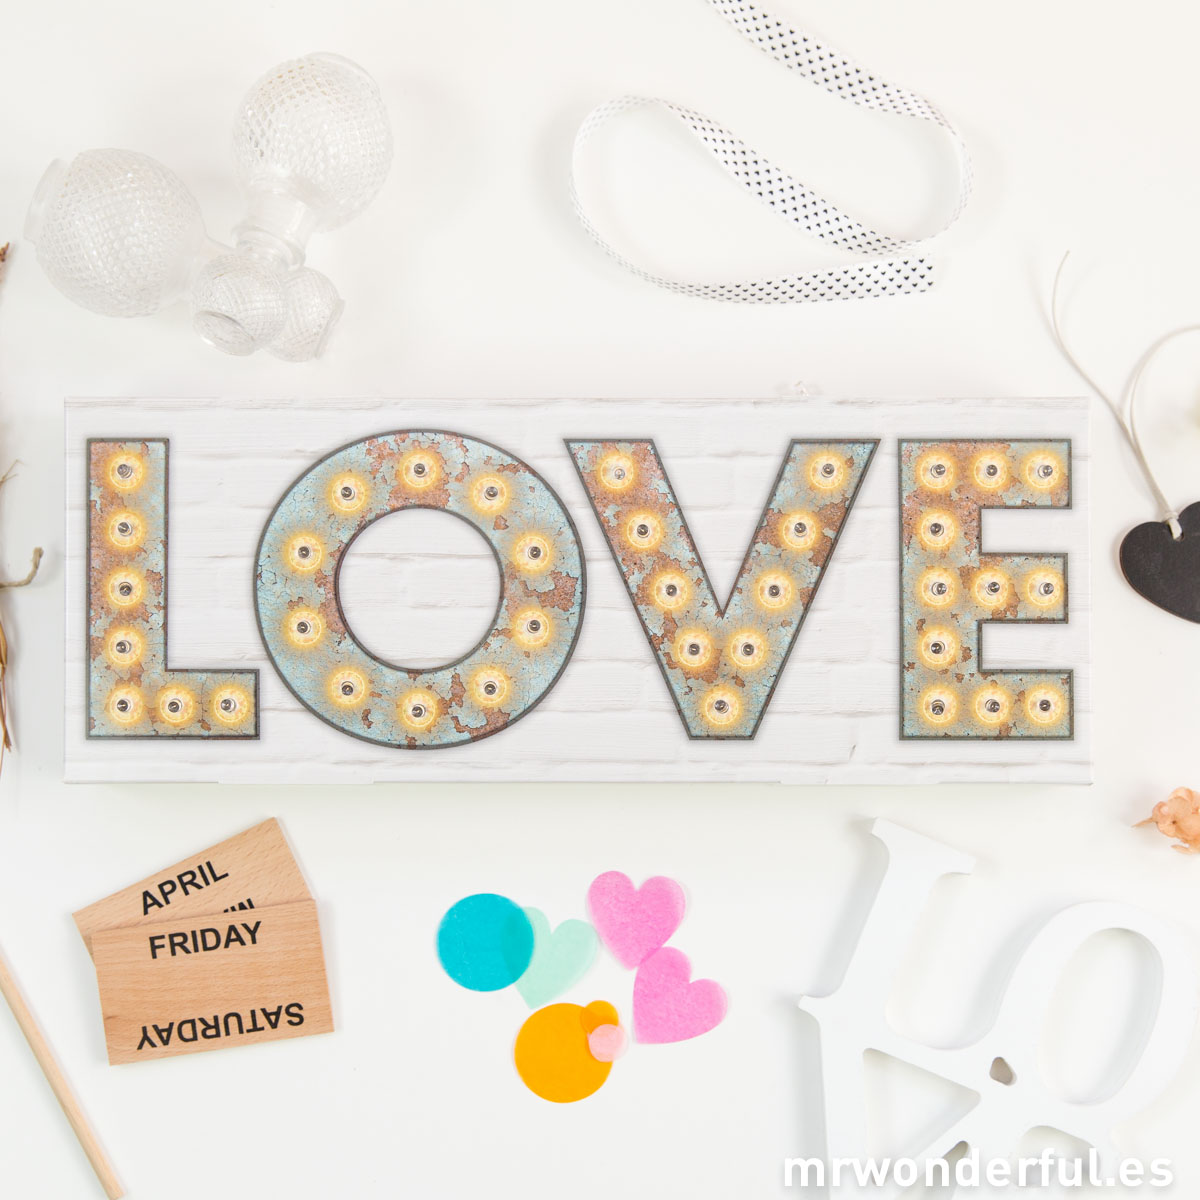 mrwonderful_ILLUM-LOVE_Letro-luminoso-Love-2